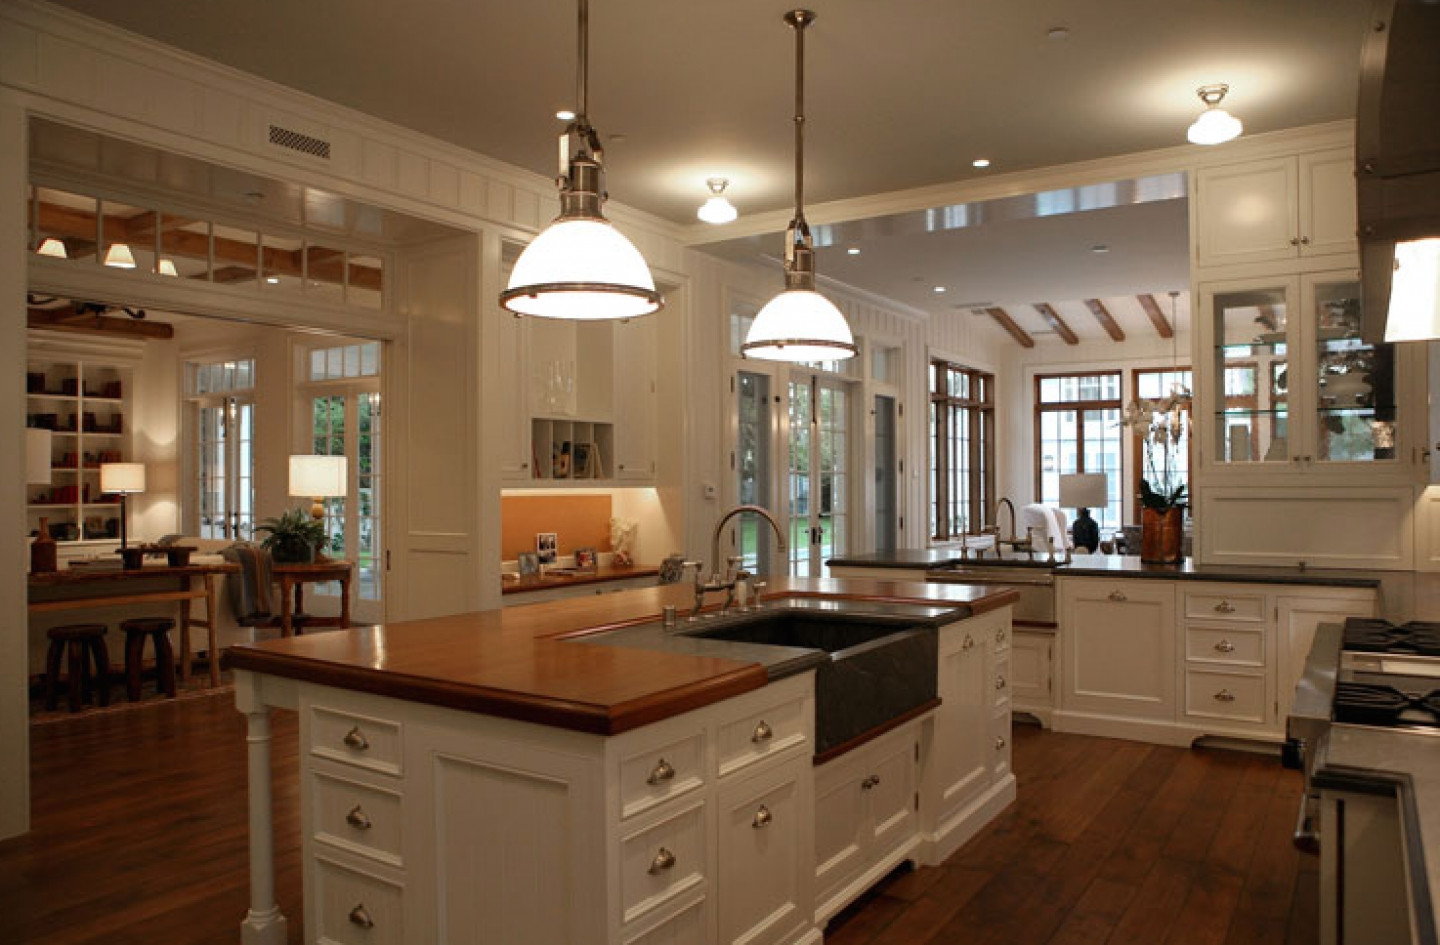 large country kitchen designs large country kitchen designs large country kitchen designs